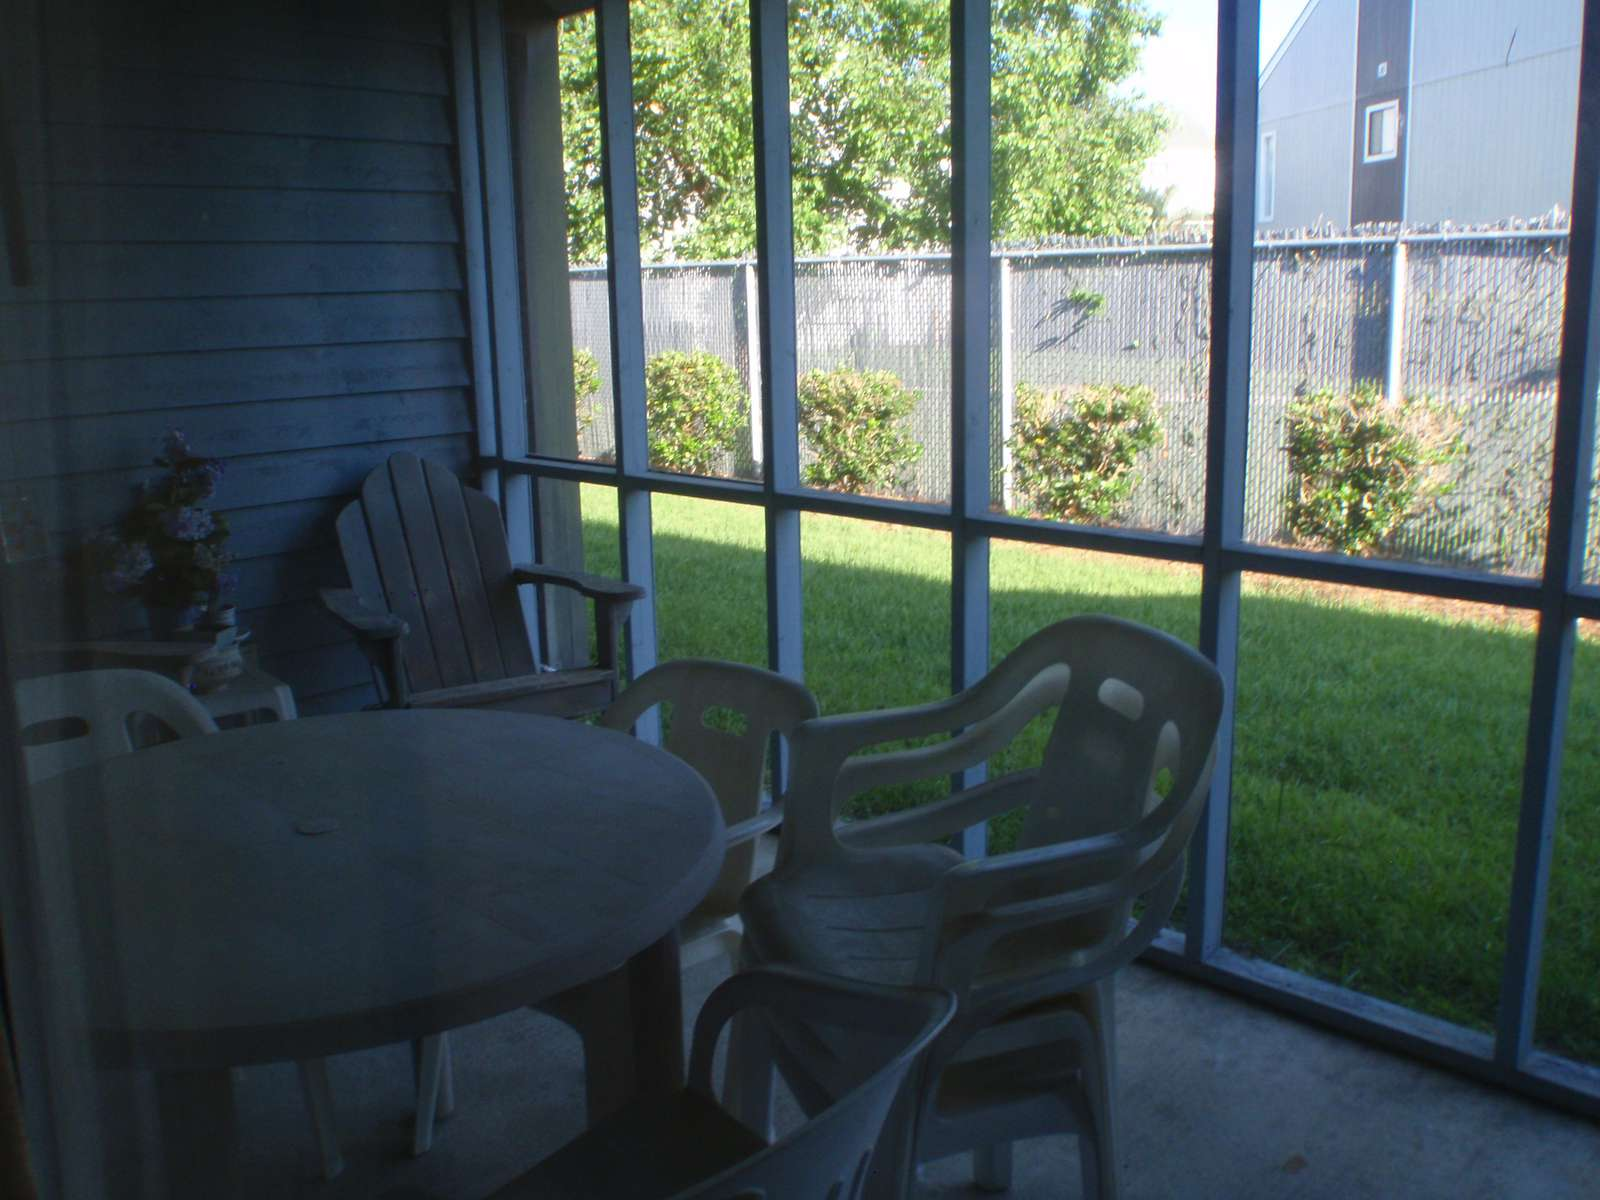 Screened in Patio Area